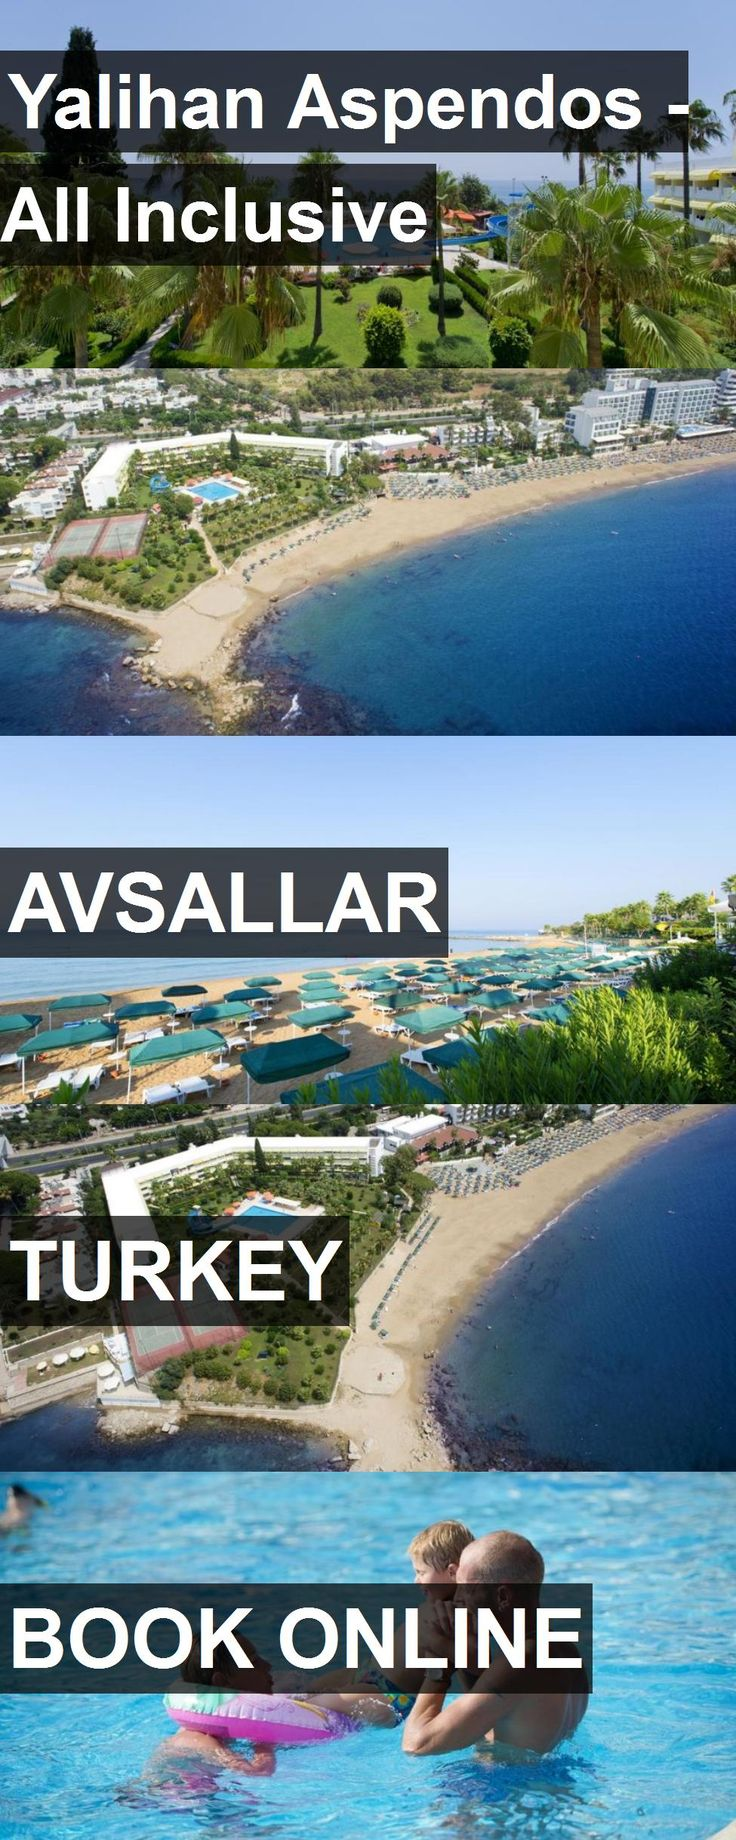 Hotel Yalihan Aspendos - All Inclusive in Avsallar, Turkey. For more information, photos, reviews and best prices please follow the link. #Turkey #Avsallar #travel #vacation #hotel